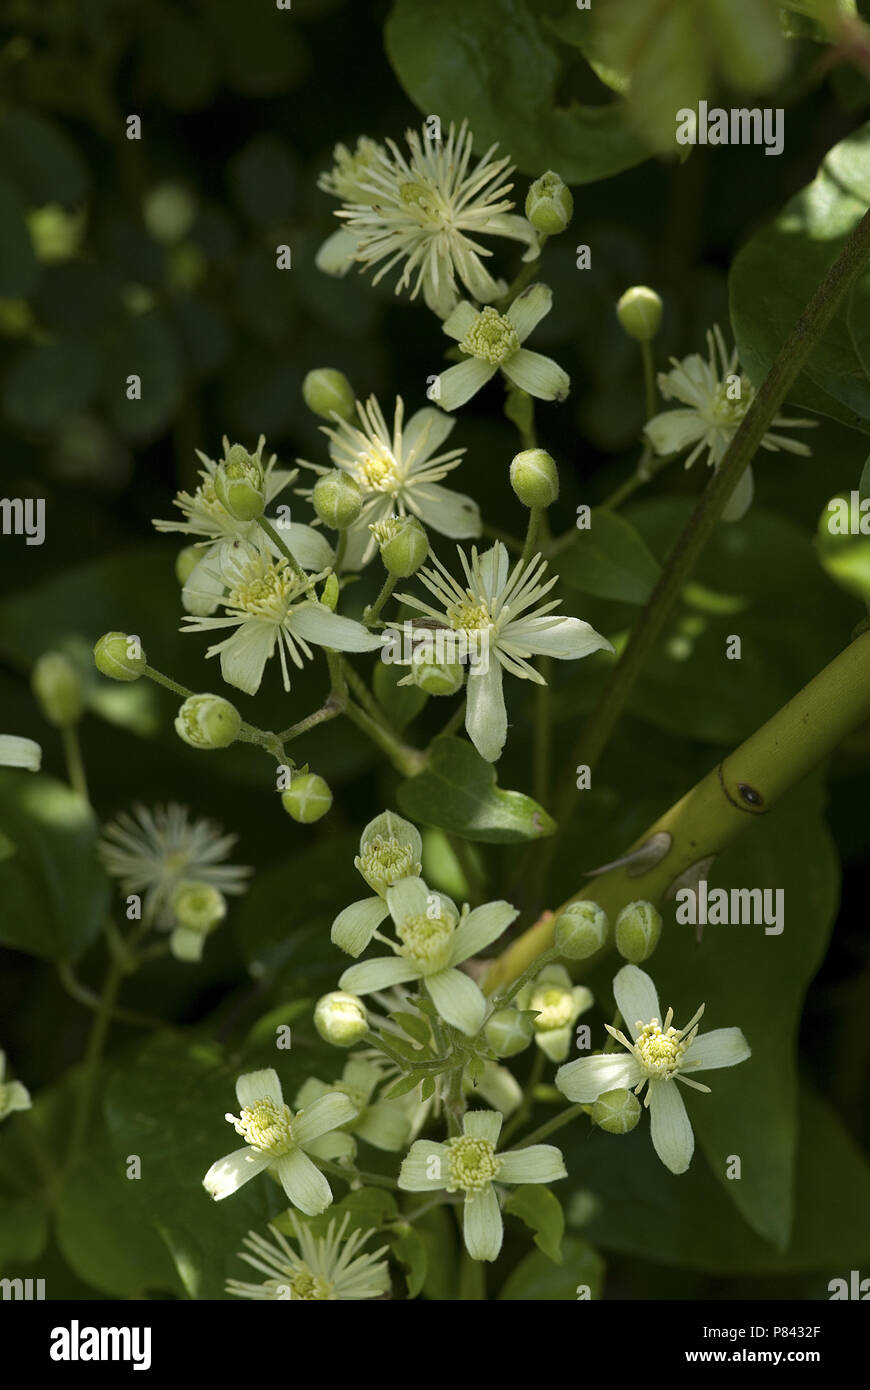 European flora, flowers - Stock Image